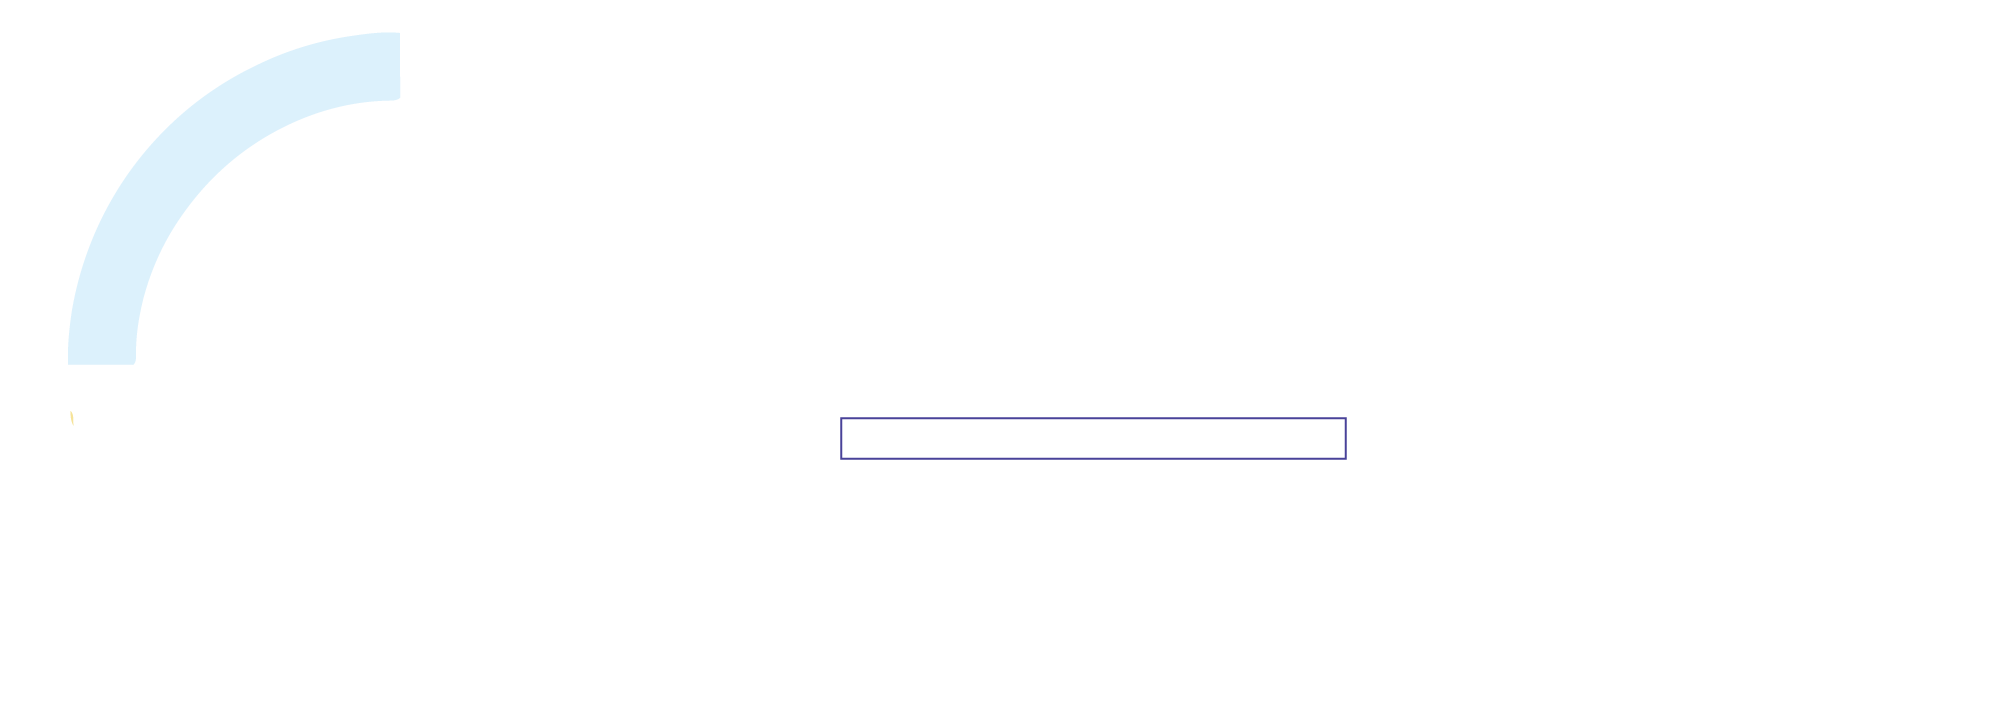 Health Think Analytics